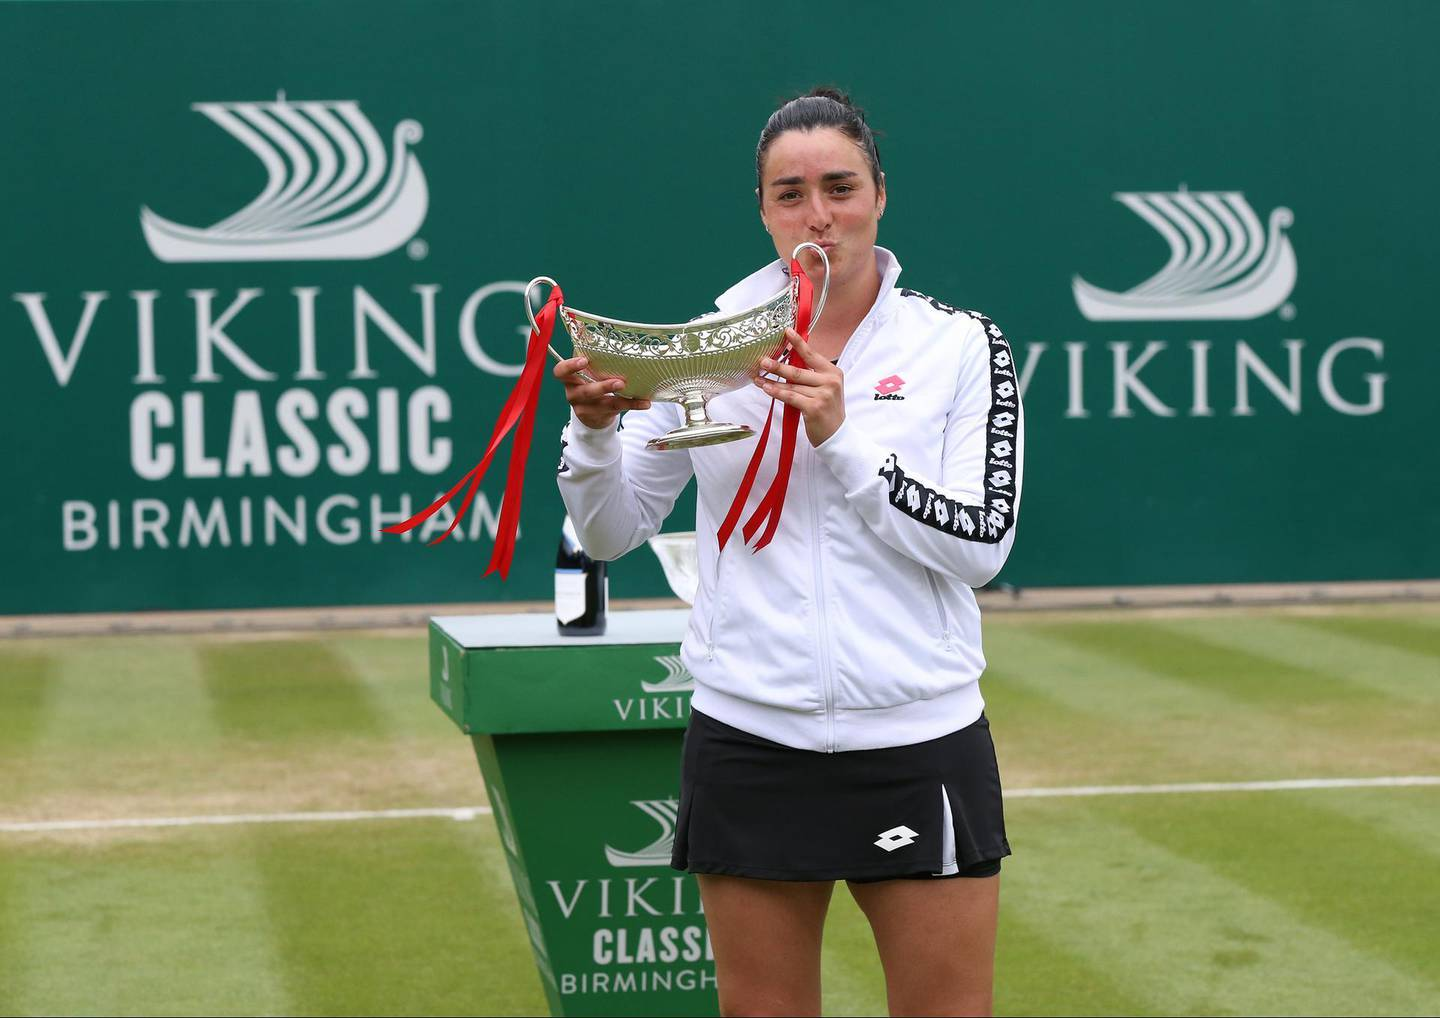 BIRMINGHAM, ENGLAND - JUNE 20: Ons Jabeur of Tunisia celebrates with the trophy after her victory against Daria Kasatkina of Russia in the Womens Singles Final during the Viking Classic Birmingham at Edgbaston Priory Club on June 20, 2021 in Birmingham, England. (Photo by Barrington Coombs/Getty Images for LTA)